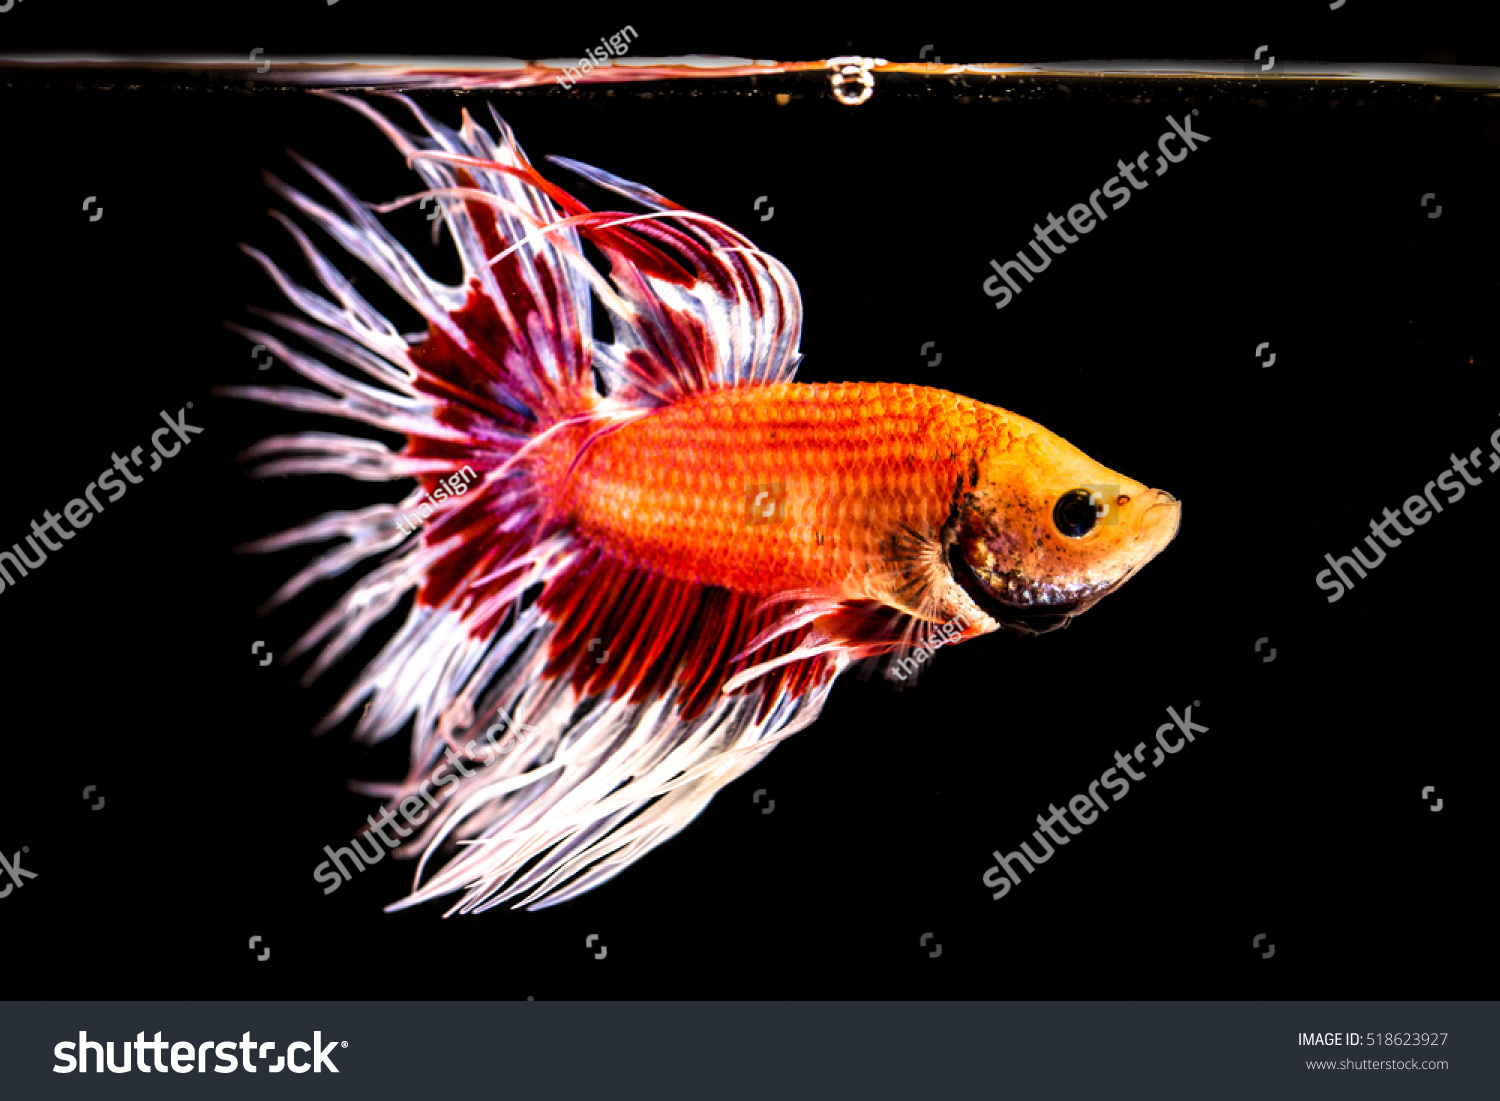 Siamese fighting fish freshwater fish who stock photo for Fish and tails